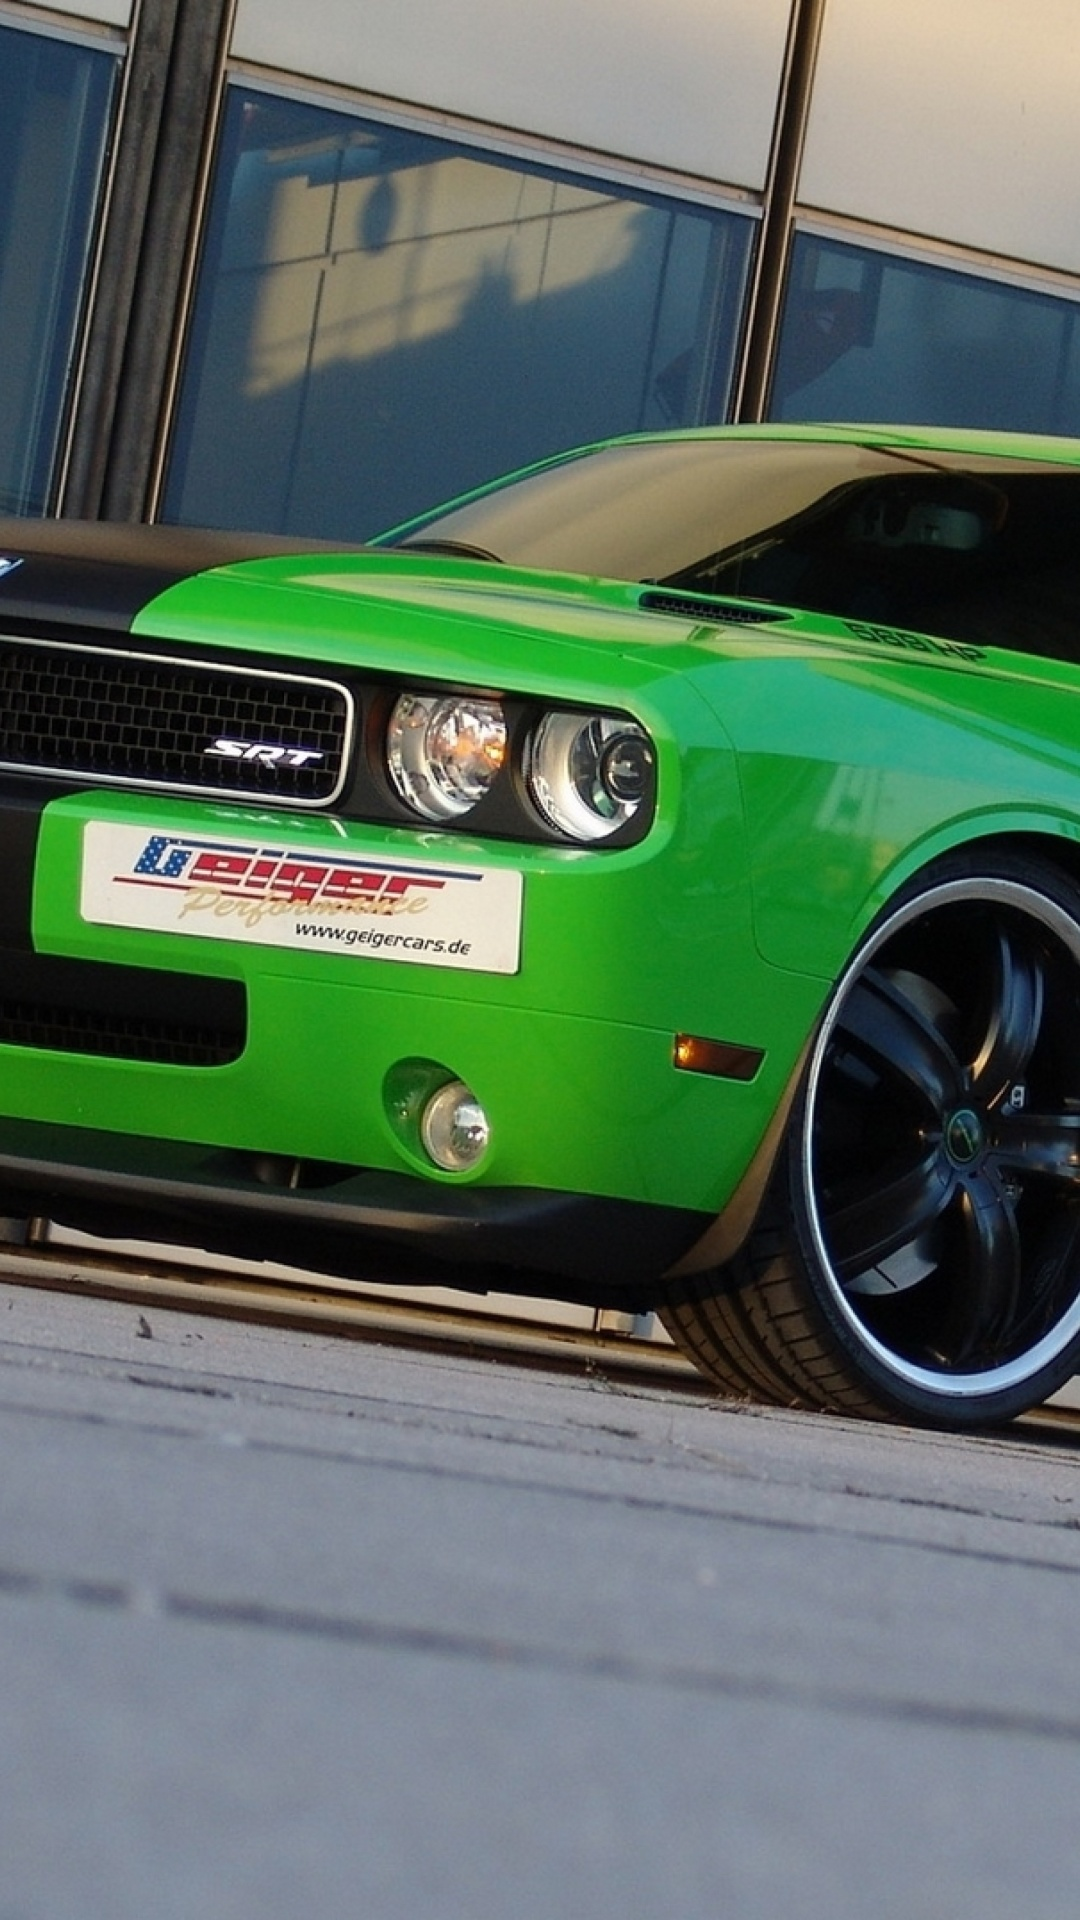 2011 Dodge Challenger SRT8 392 wallpaper 1080x1920